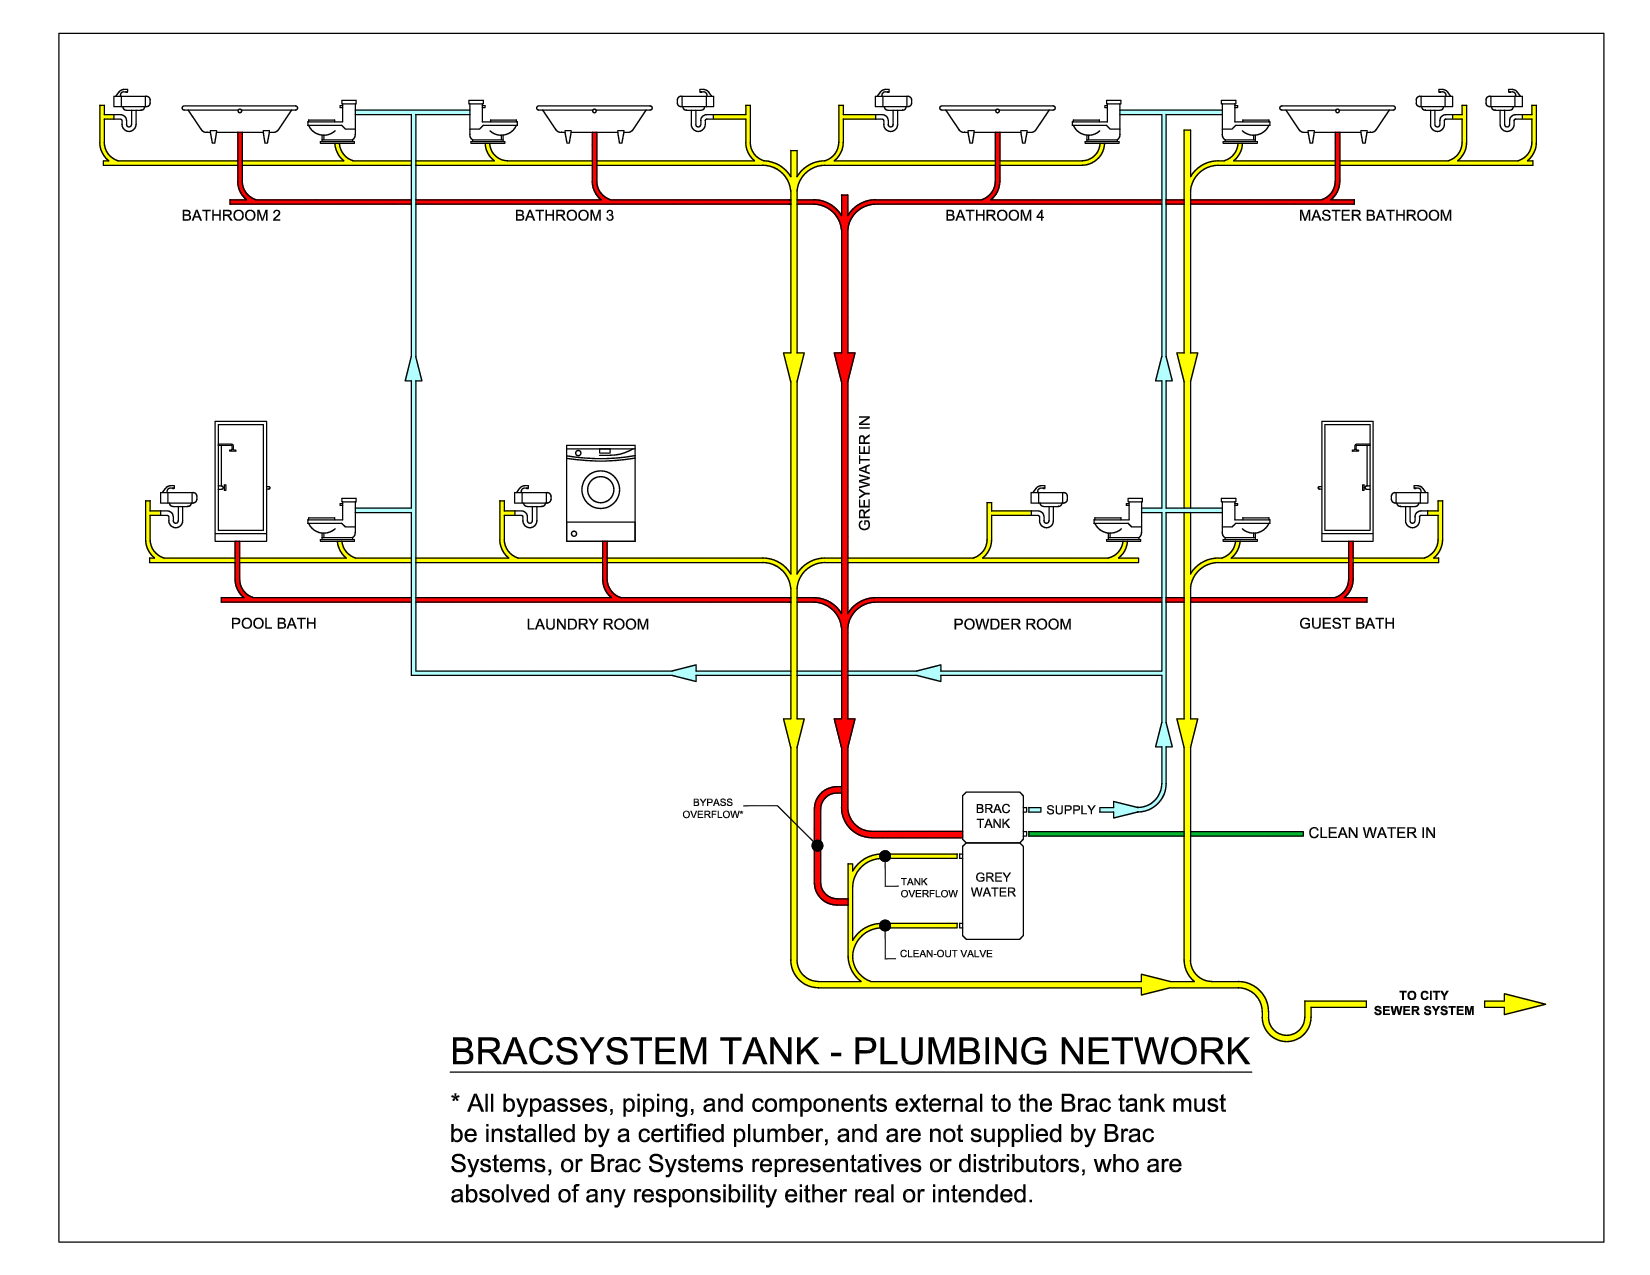 sewer diagram for house lawn tractor ignition switch wiring plumbing schematics piping system elsavadorla